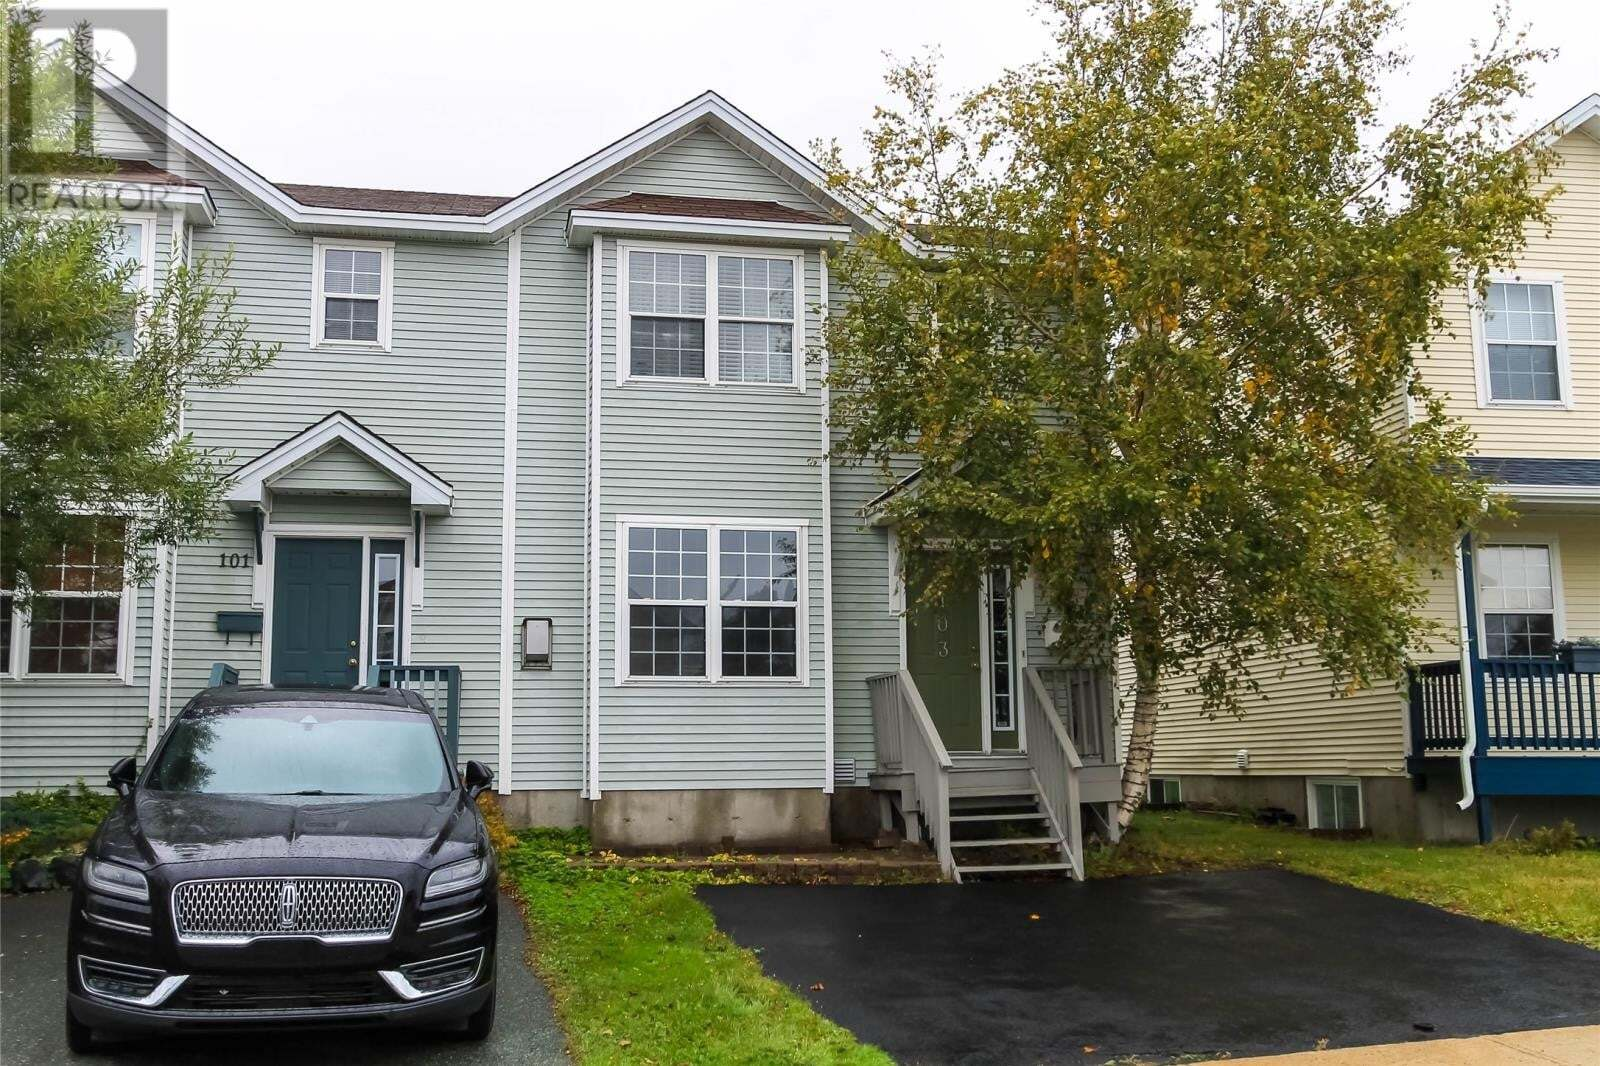 House for sale at 103 Moss Heather Dr St. John's Newfoundland - MLS: 1222333